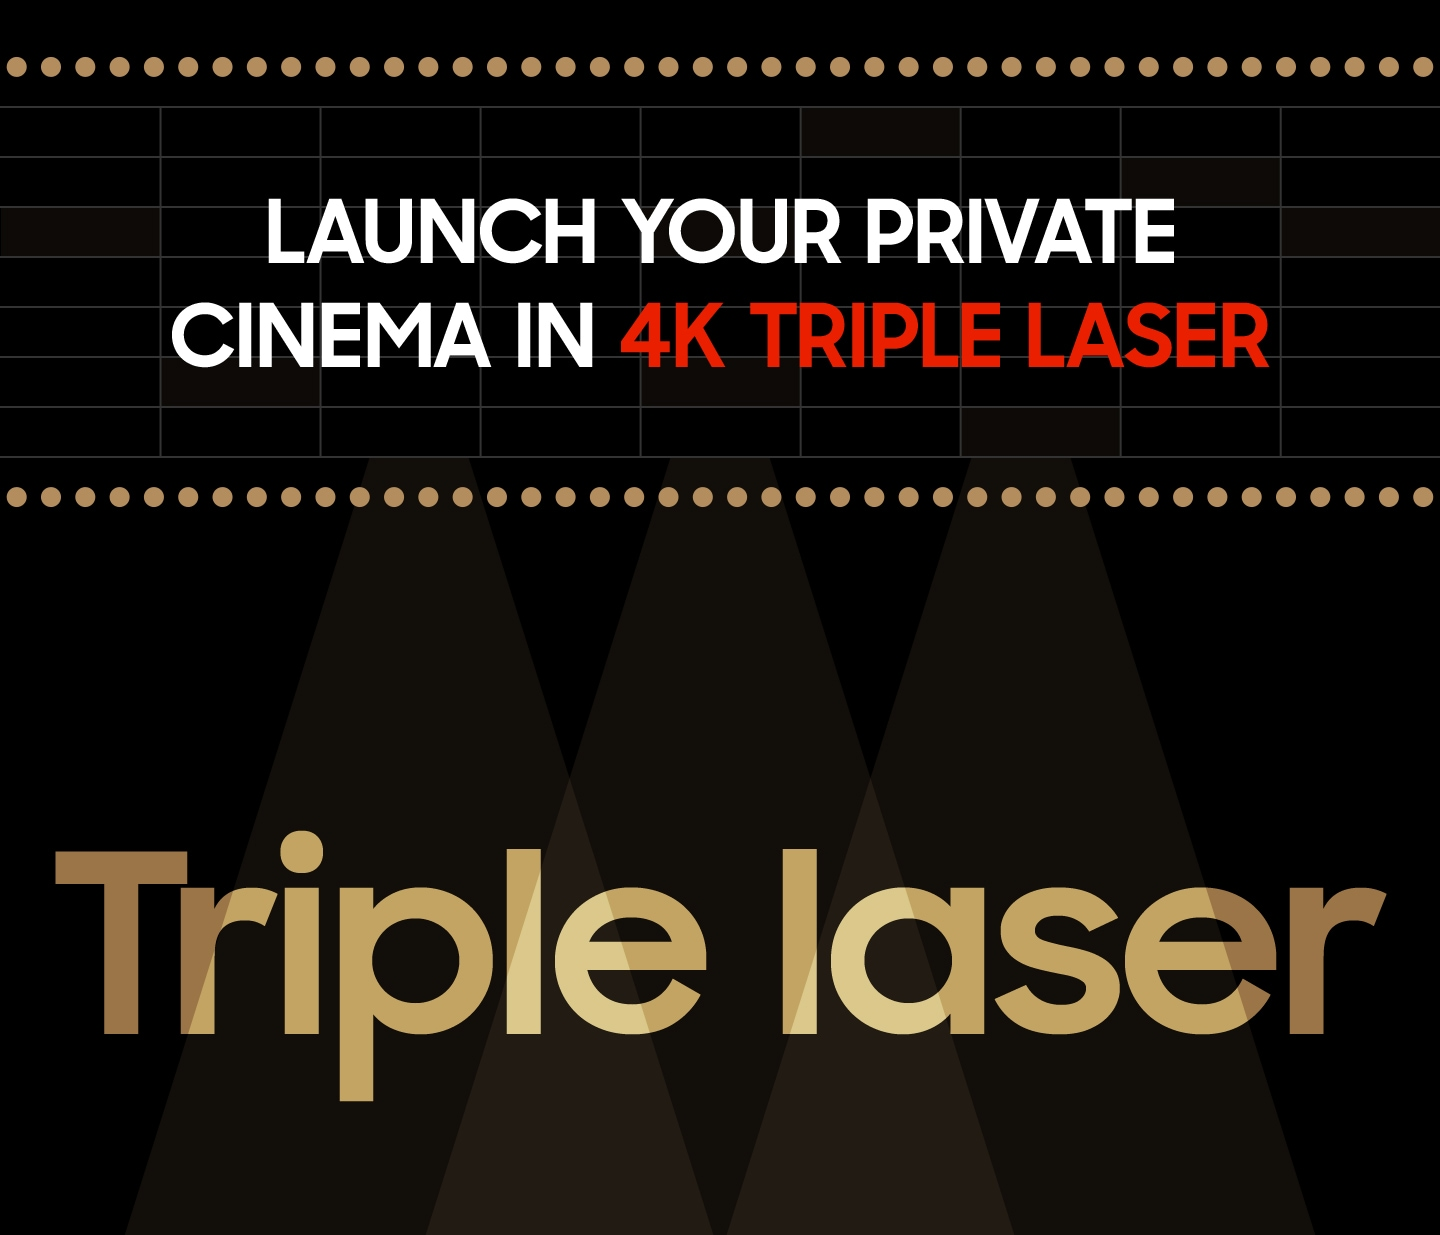 Launch your private cinema in 4K Triple laser Triple laser